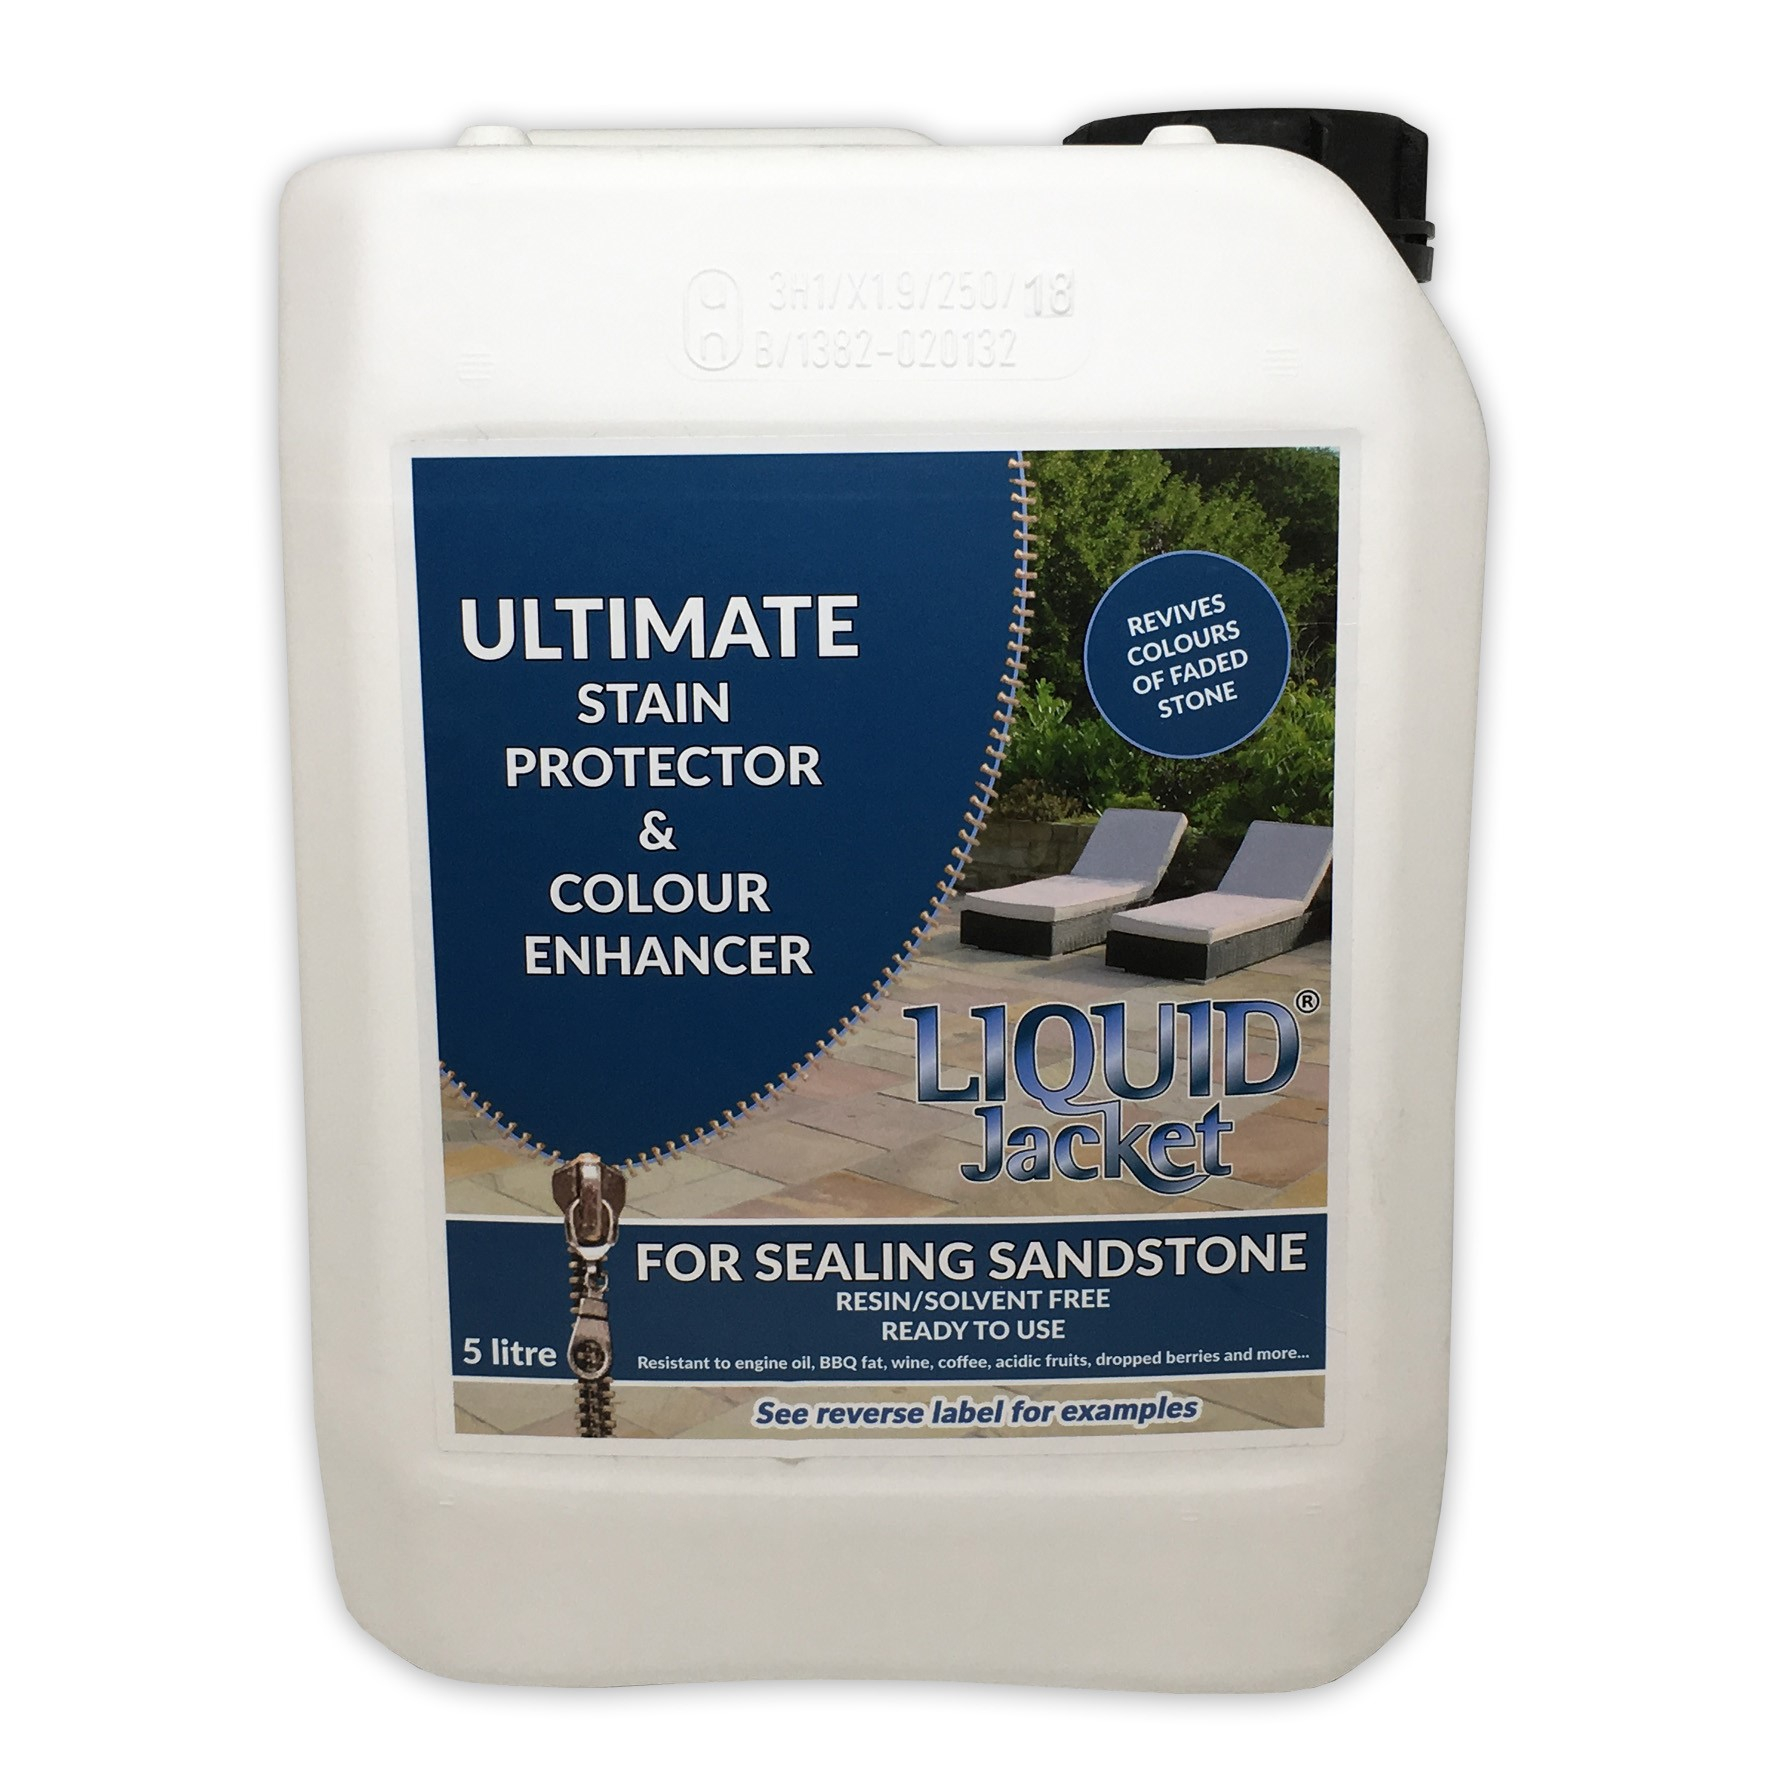 Liquid Jacket Ultimate Stain Protector & Colour Enhancer (Sandstone)